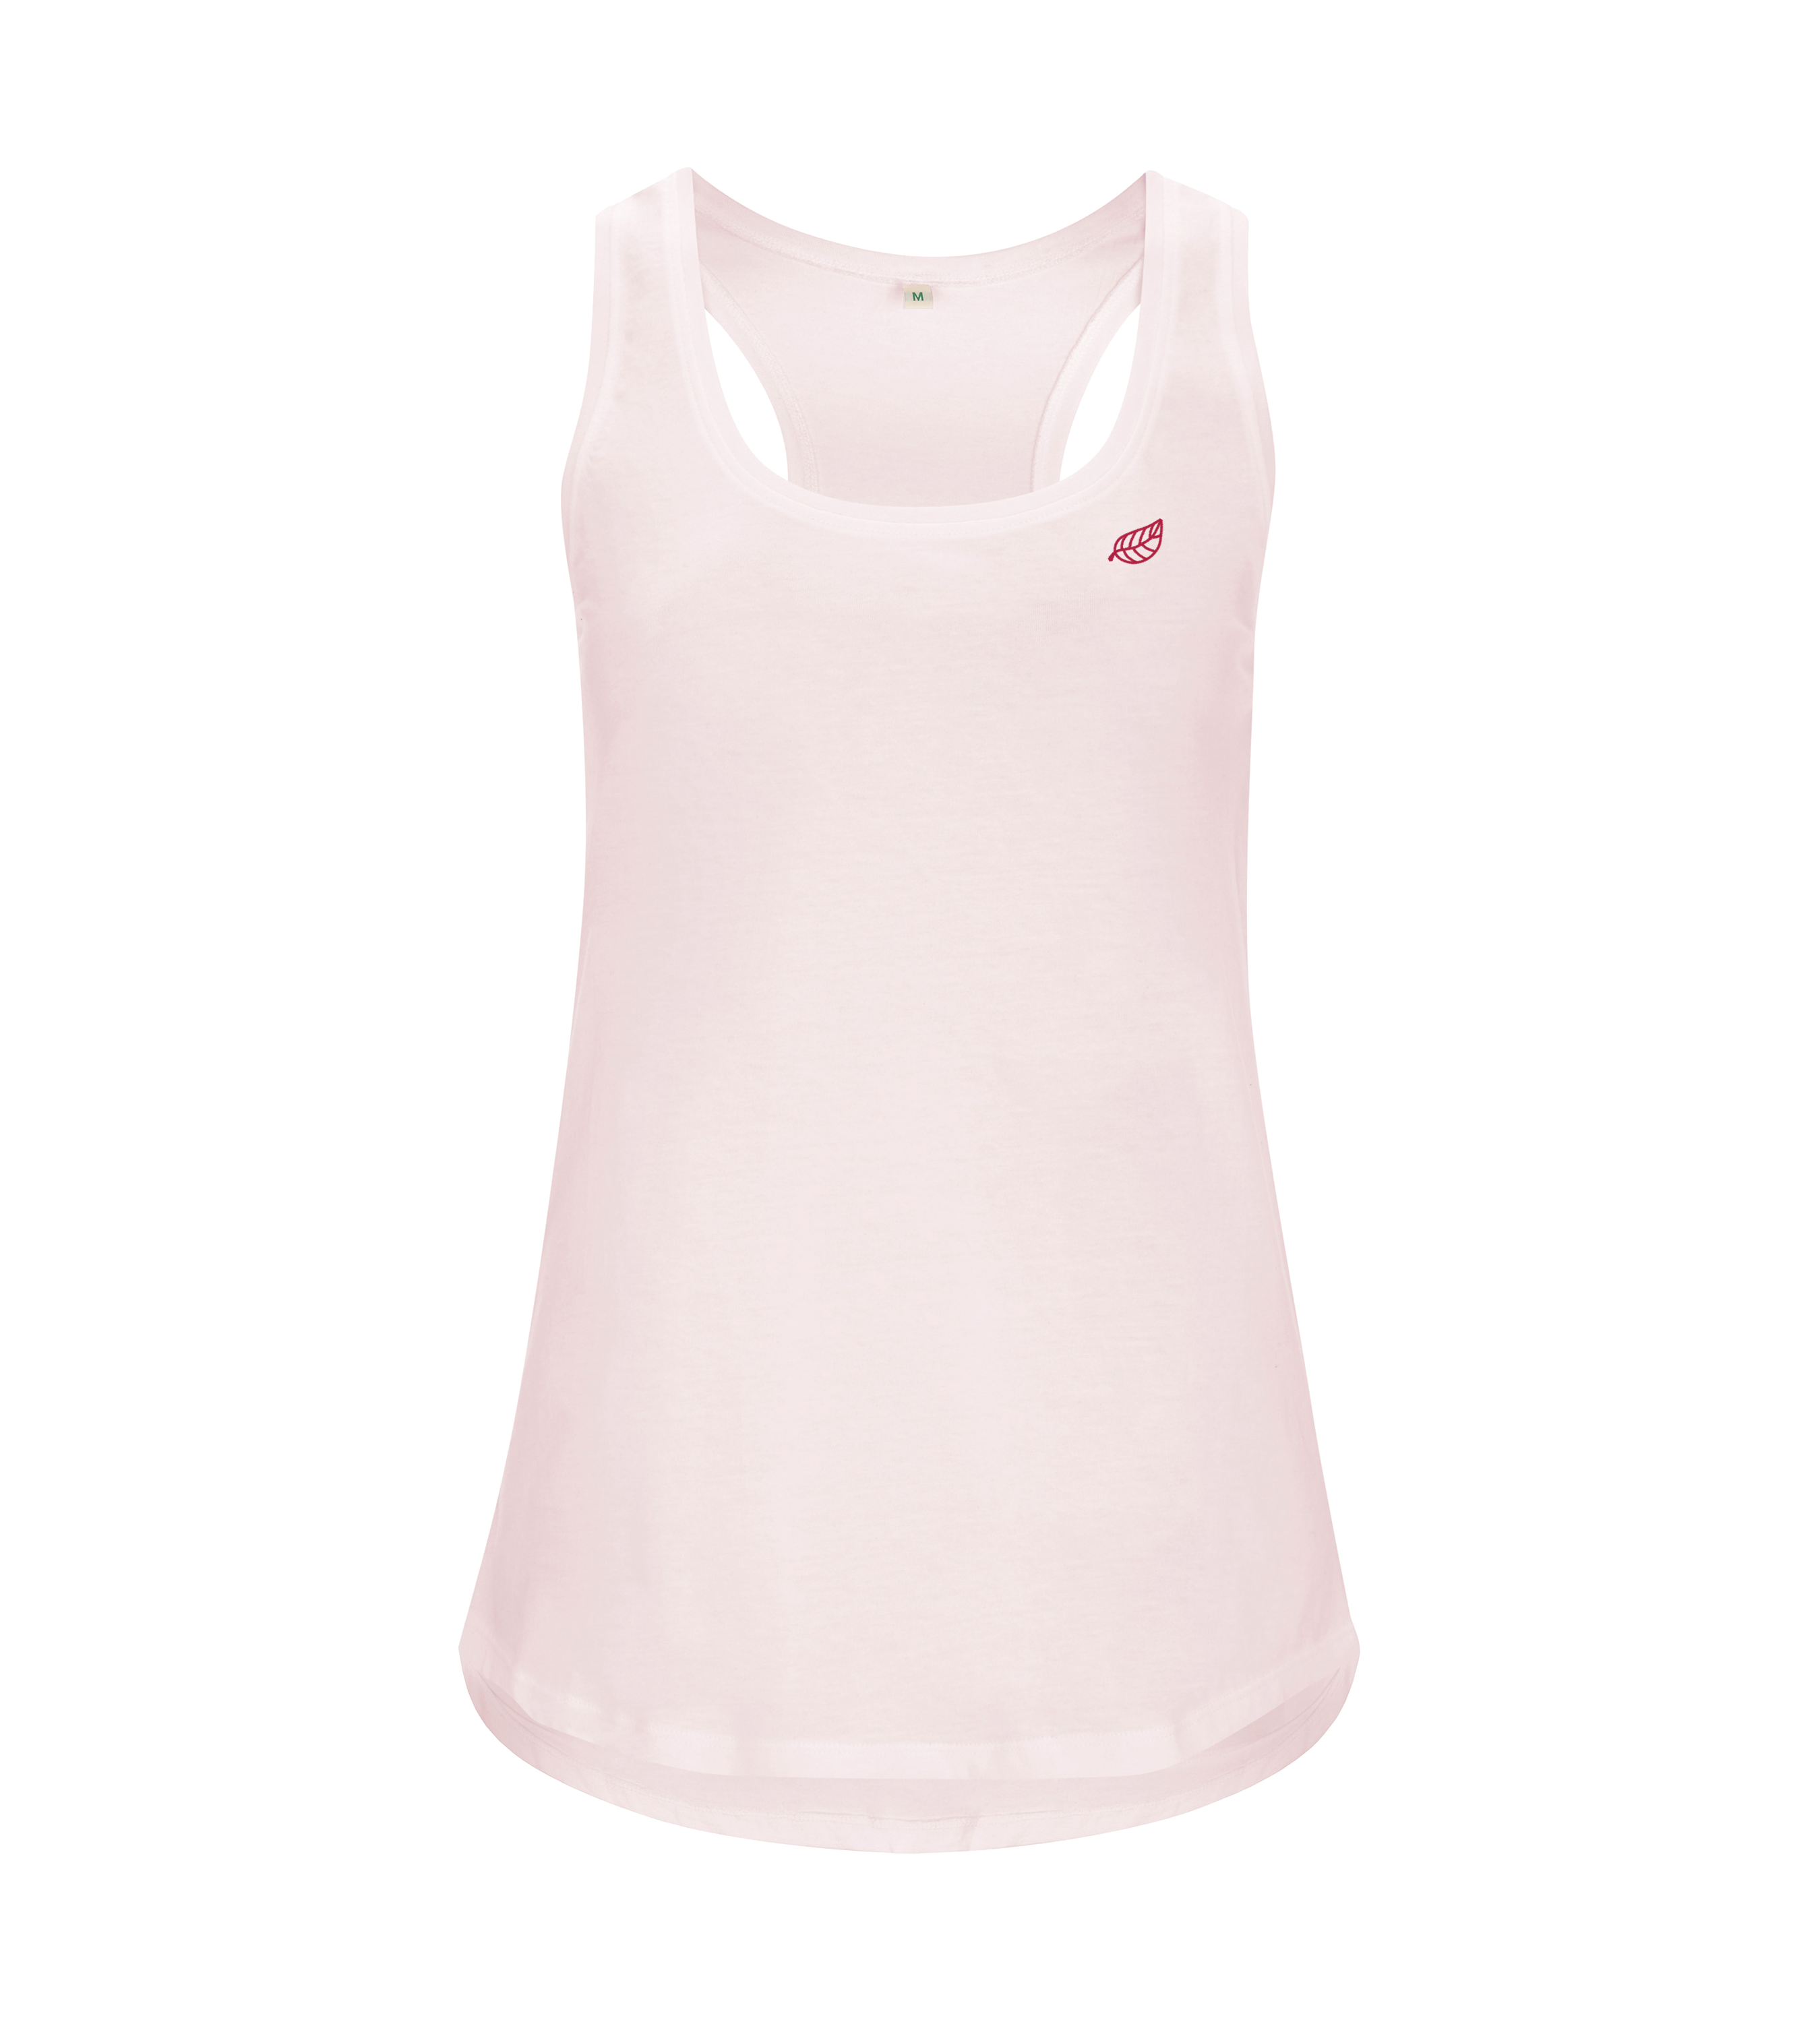 Basis Top - Light Pink - Frauen